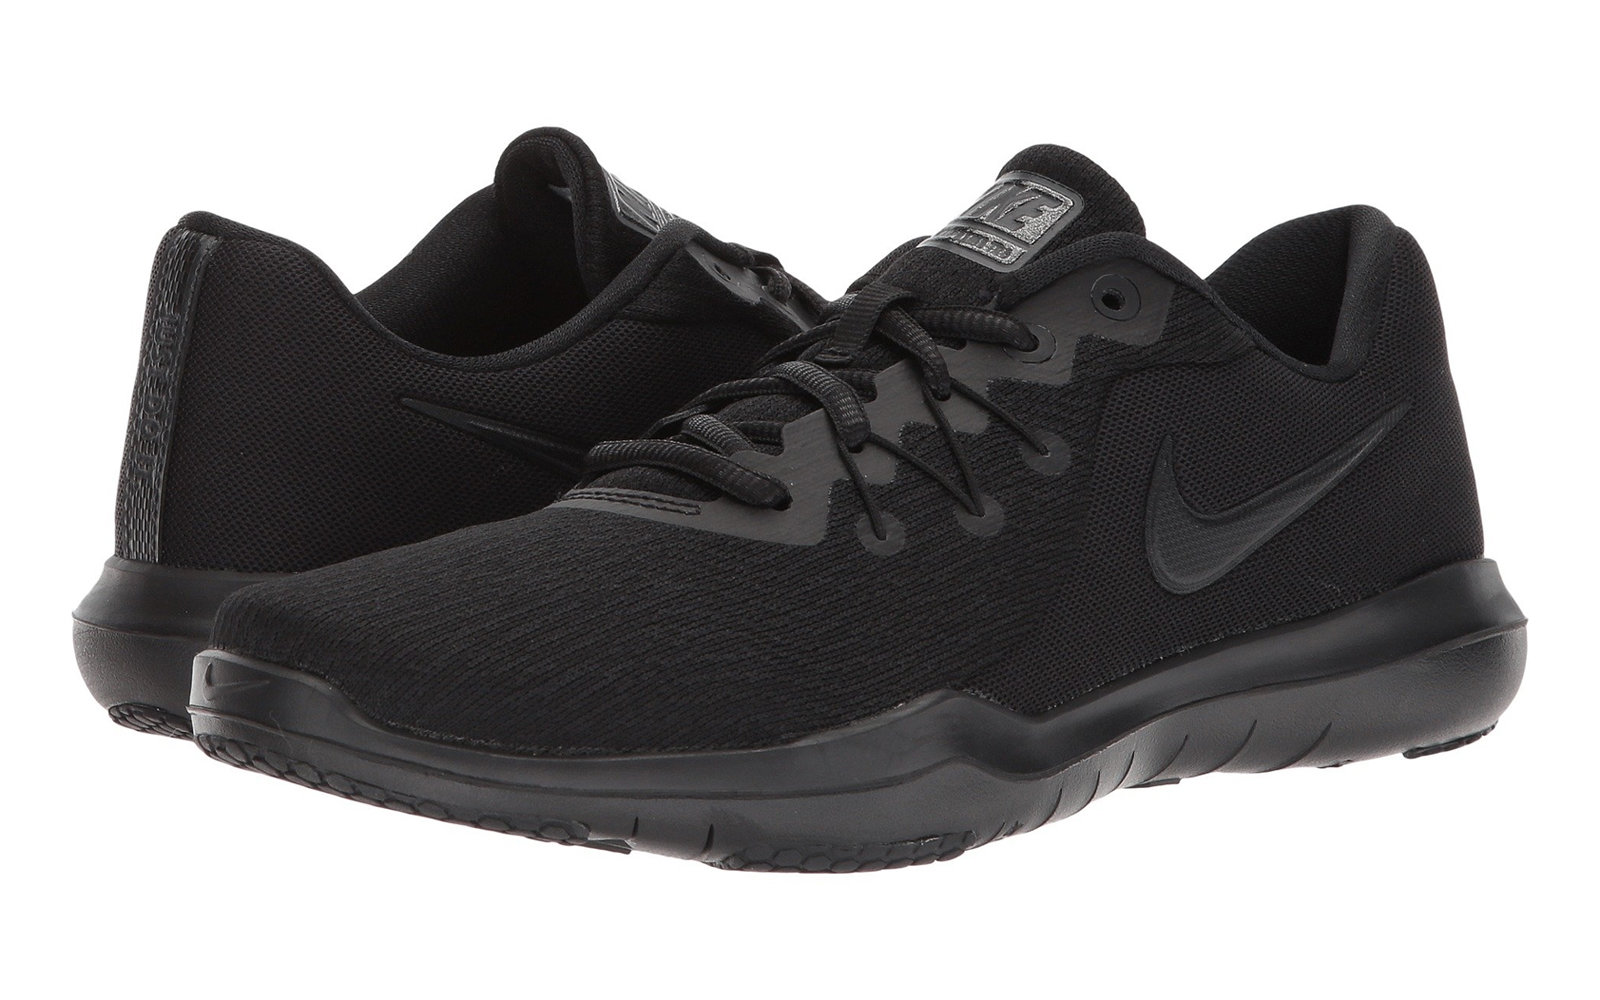 Nike Flex Supreme TR 6 Training in Black/Black/Anthracite